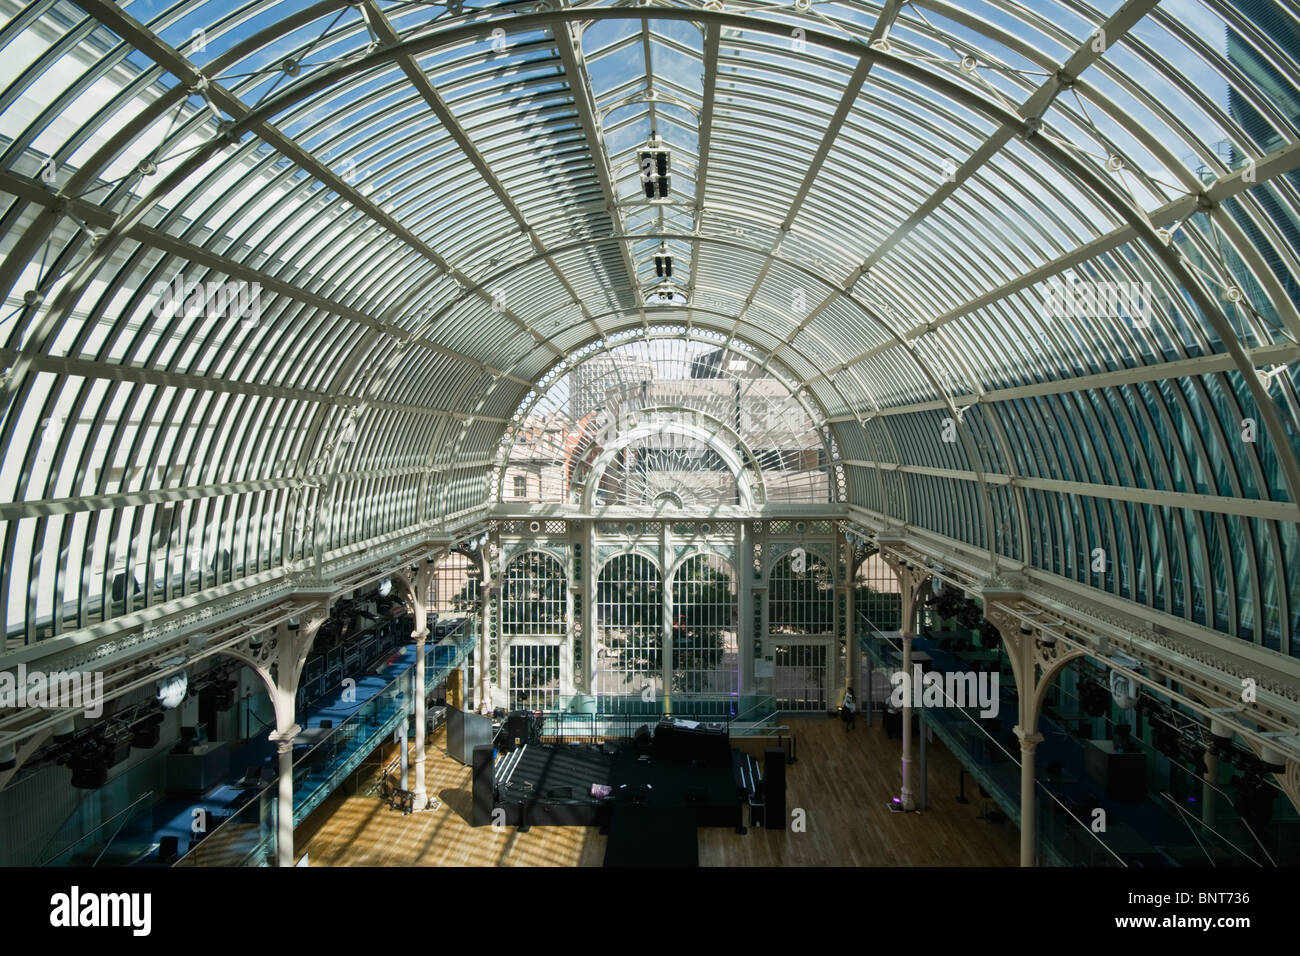 The Floral Hall At The Royal Opera House Covent Garden Stock Photo Royalty Free Image